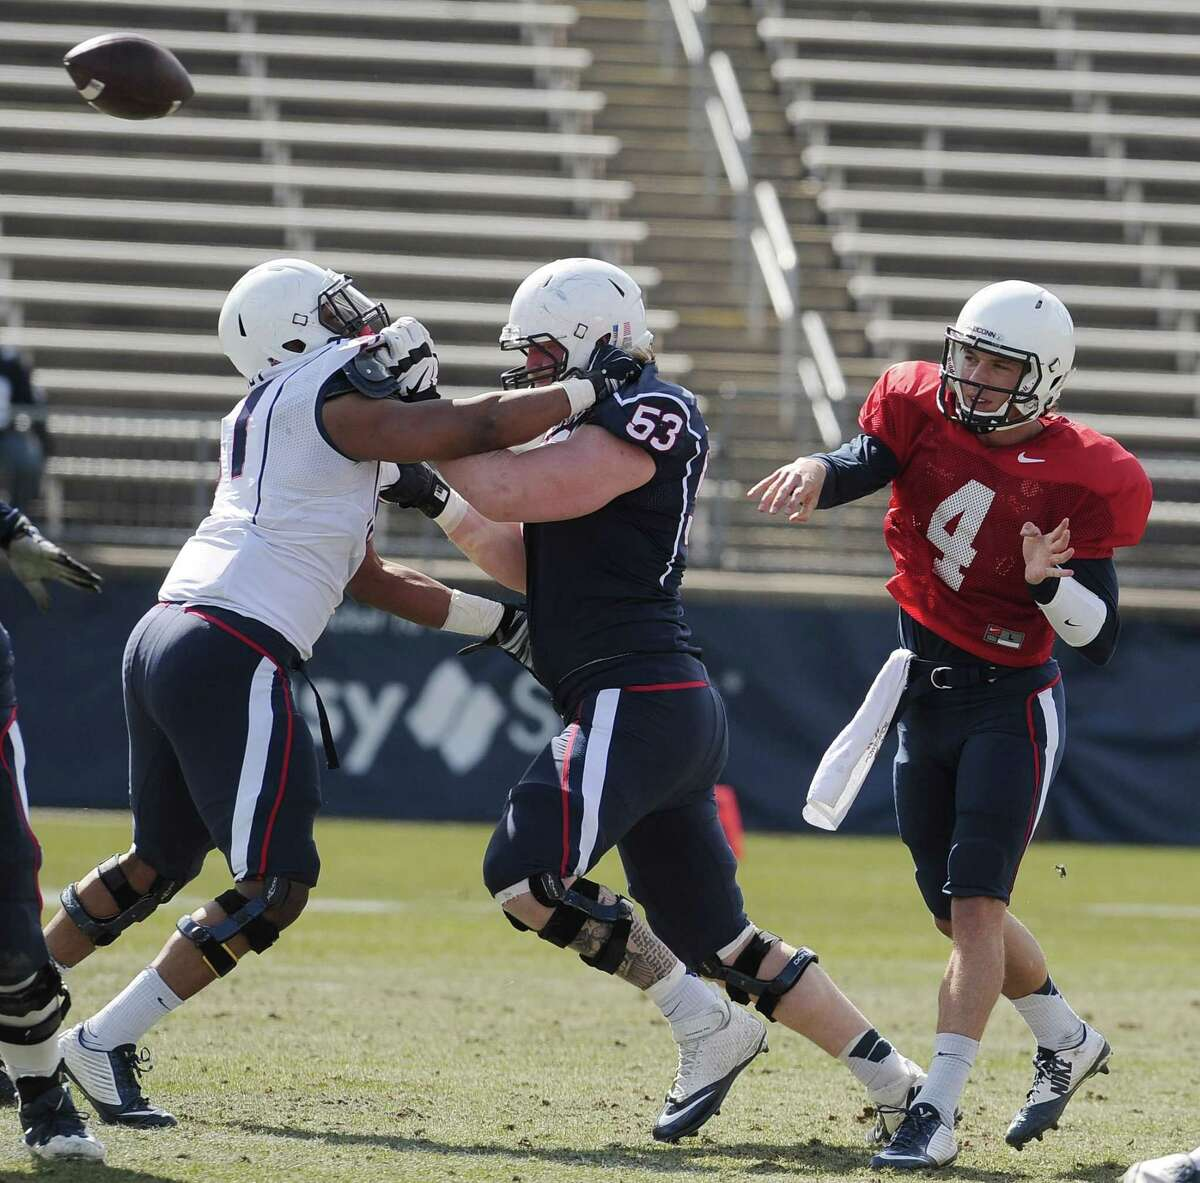 UConn quarterback Bryant Shirreffs throws over White's Omaine Stephens, left, and Blue's Andres Knappe during the first half of the annual Blue-White spring game on Saturday at Rentschler Field.